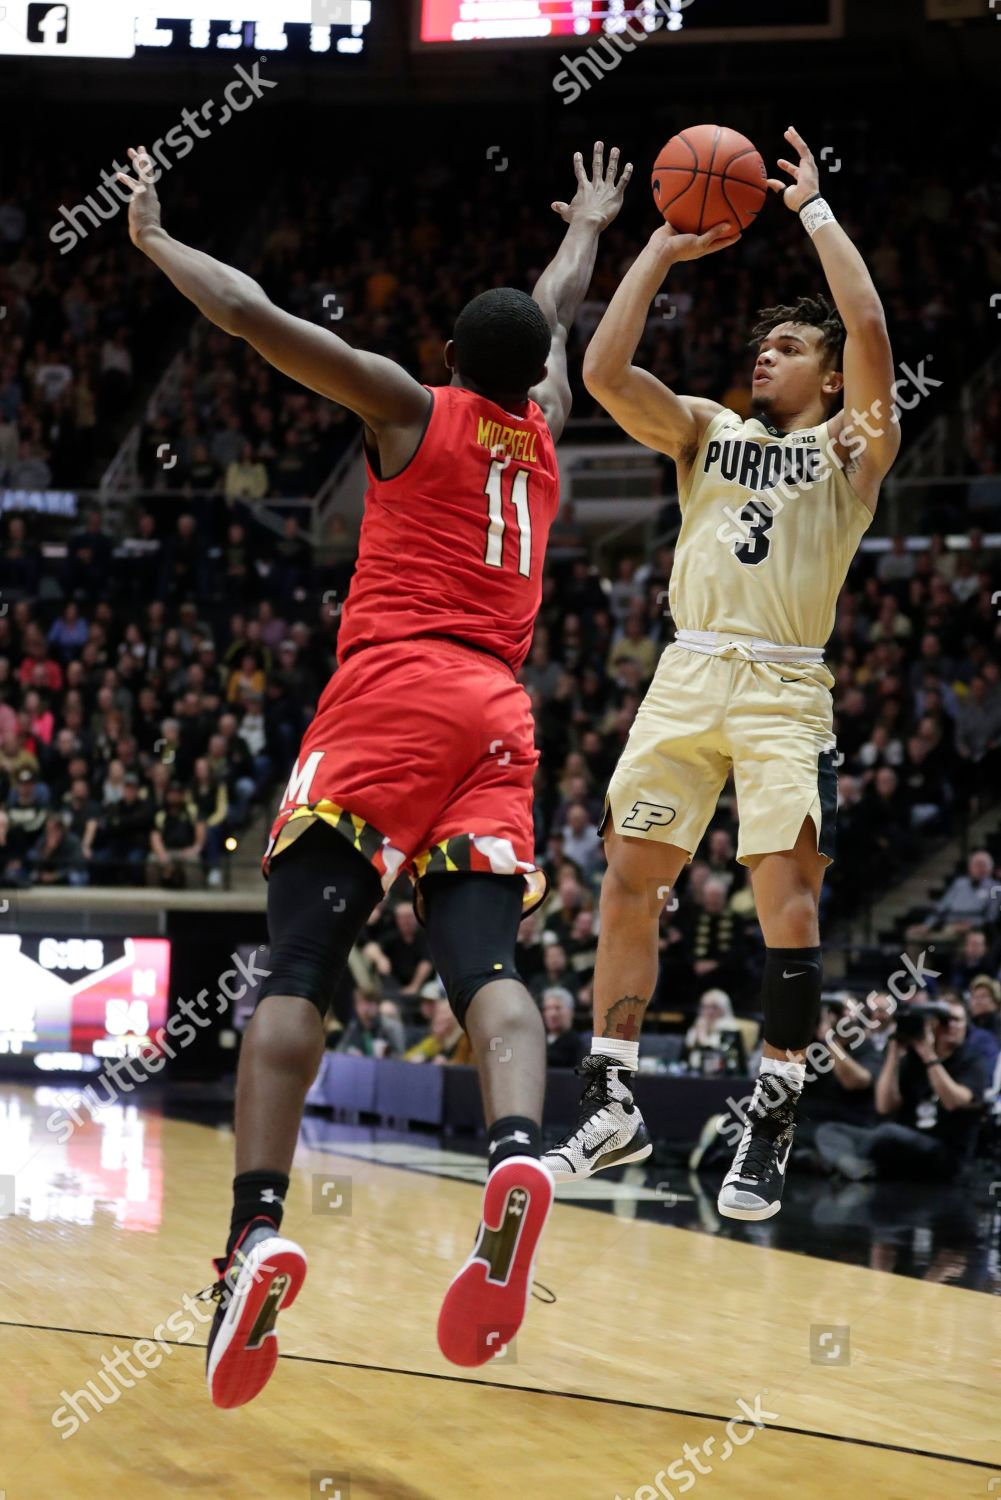 6d45c3beae1 Purdue guard Carsen Edwards 3 shoots over Editorial Stock Photo ...